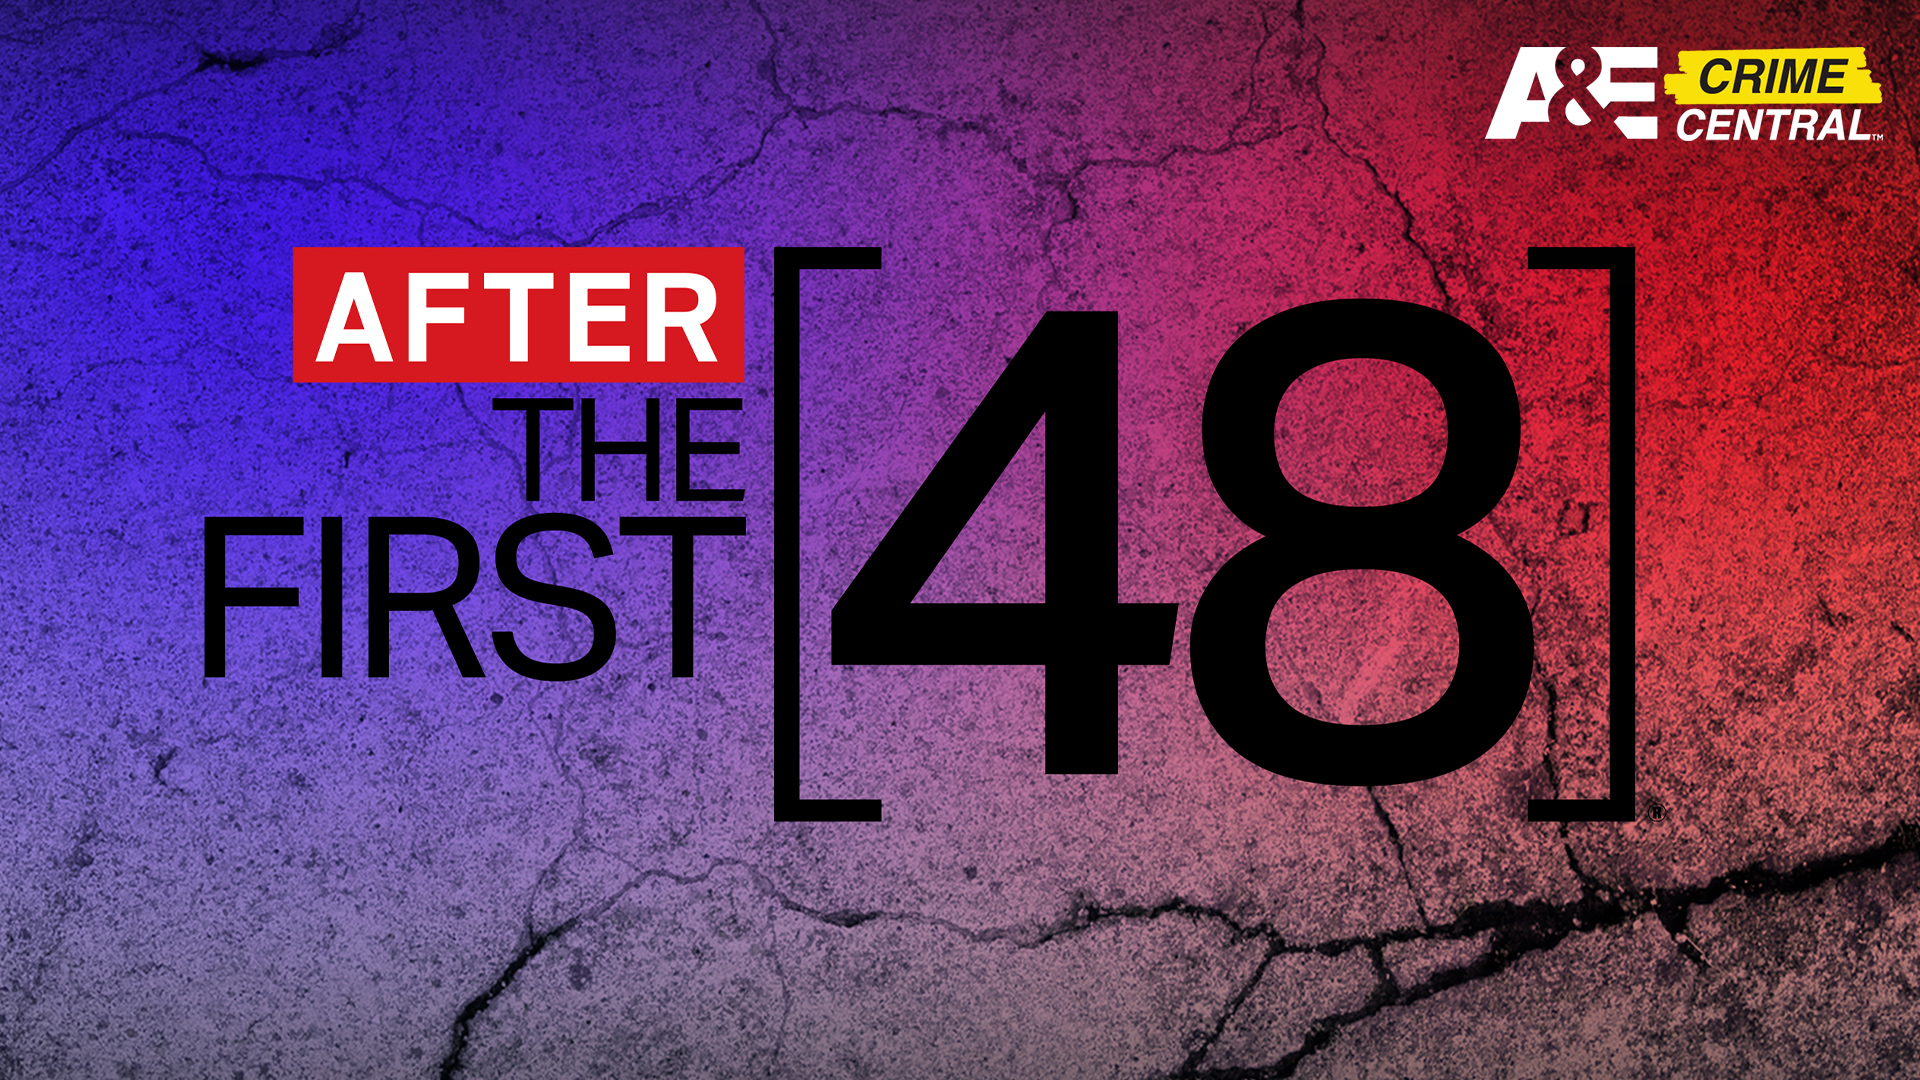 After the First 48, Season 1